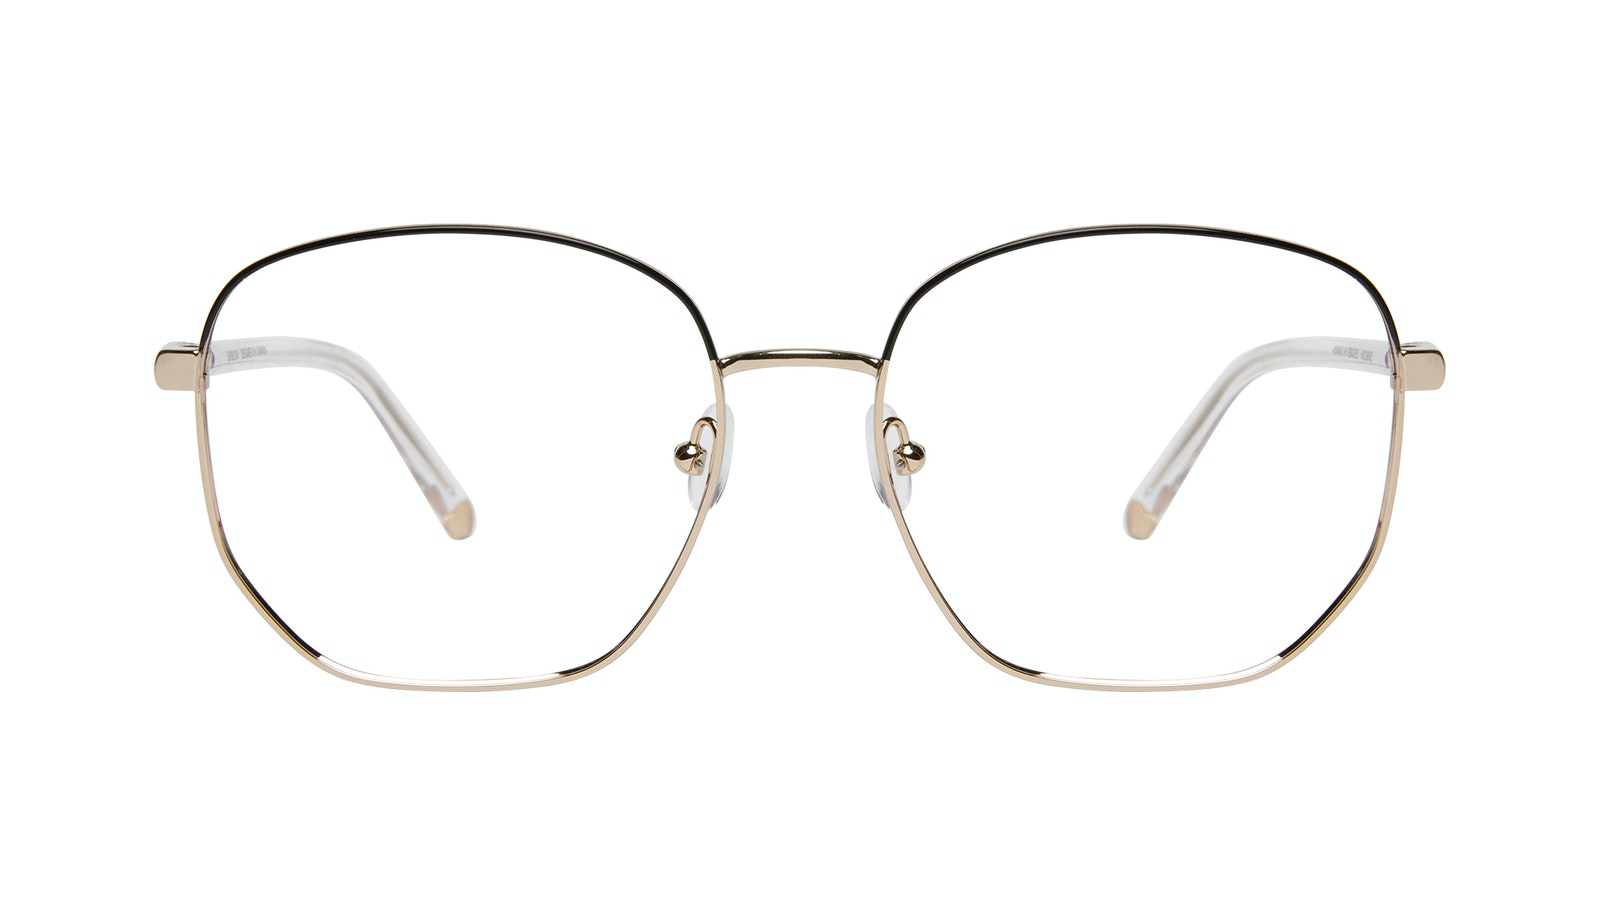 Affordable Fashion Glasses Round Eyeglasses Women Laïka Deep Gold